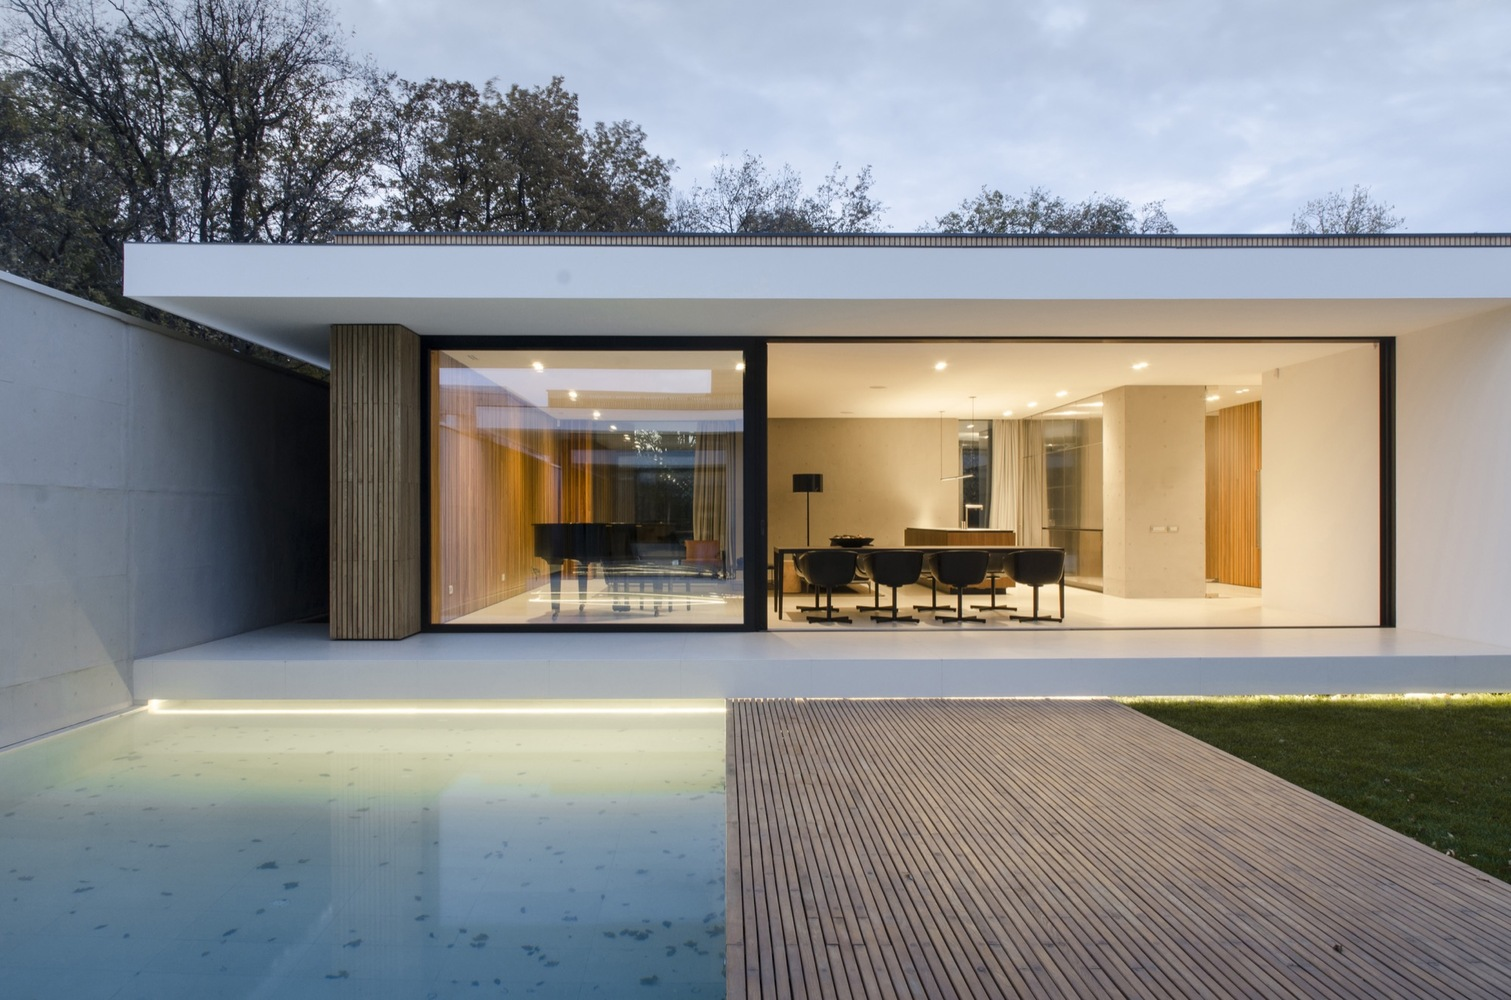 Piano House By Line Architects In Chisinau Moldova